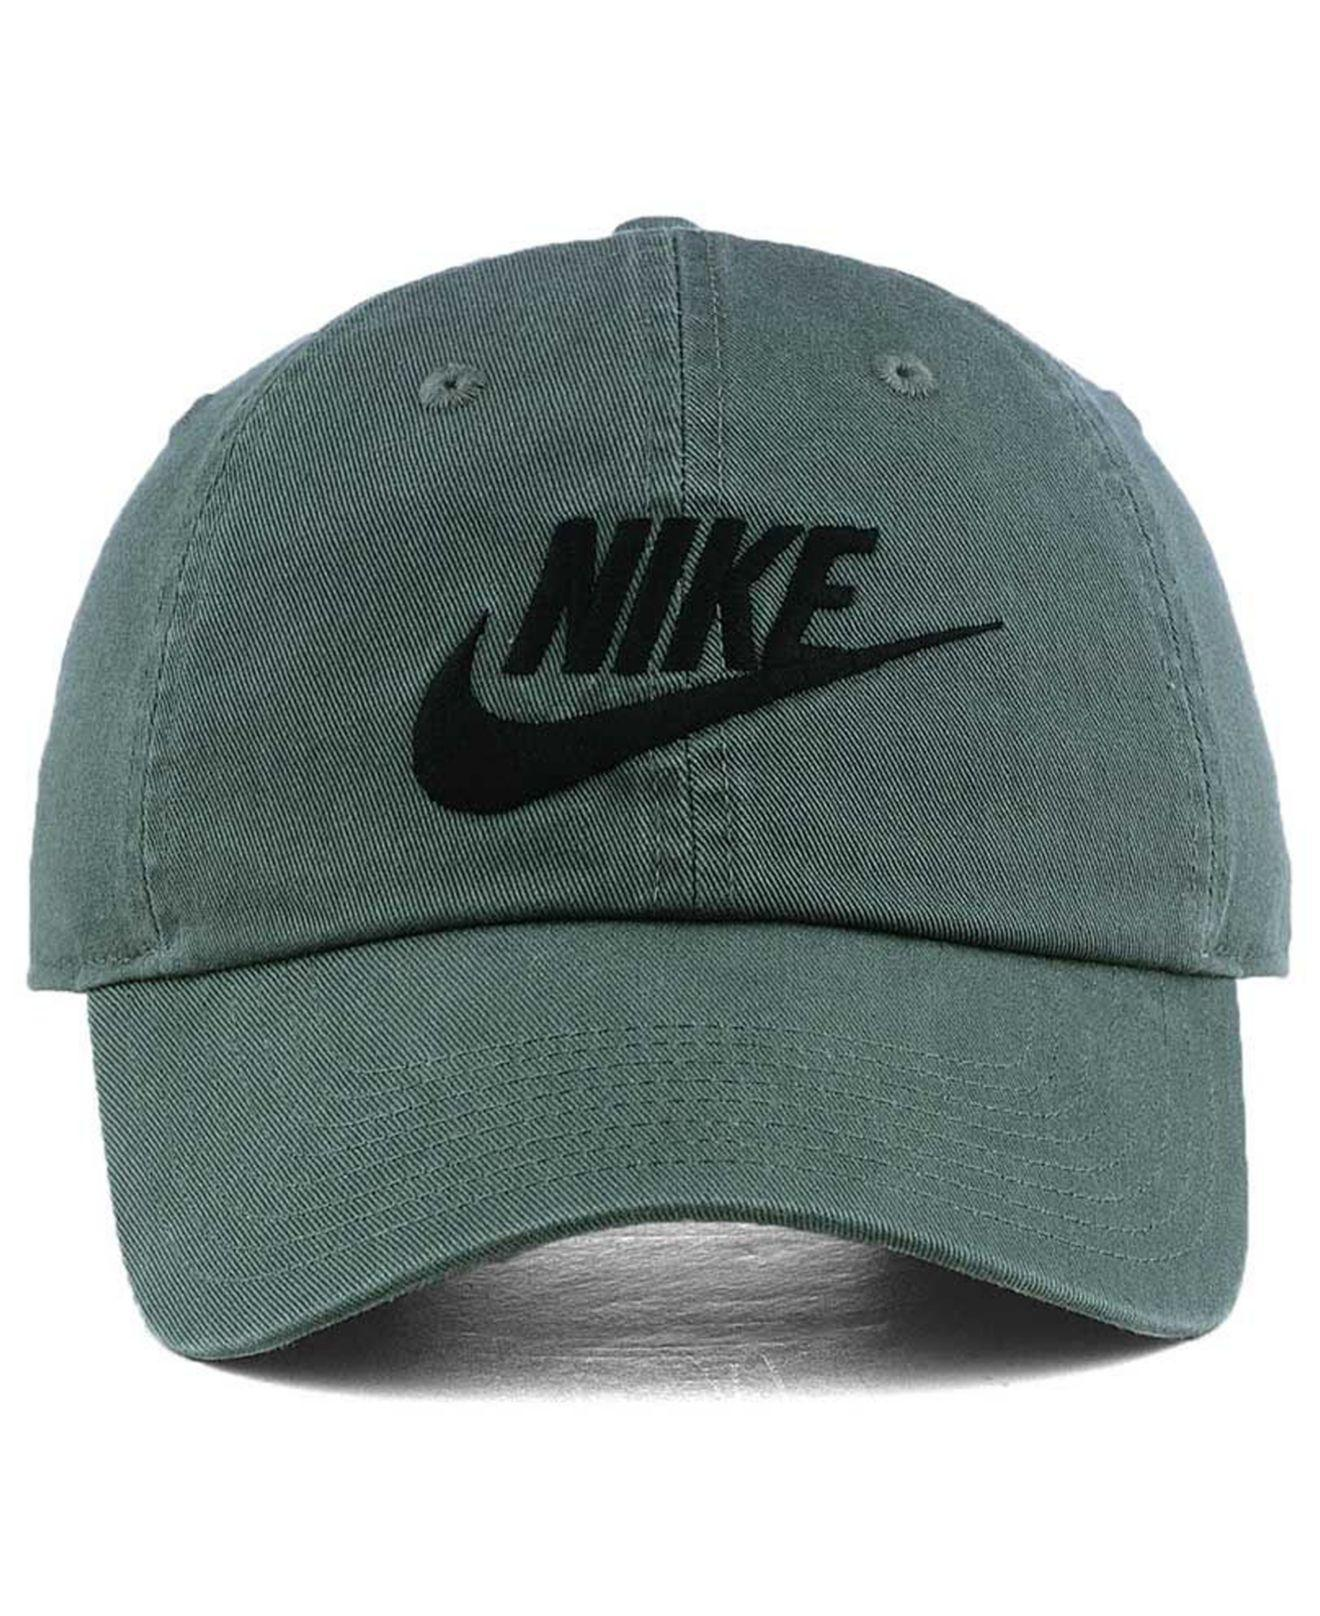 920366e19d4fe ... discount lyst nike futura washed 86 cap in green for men 731c2 6c4fe